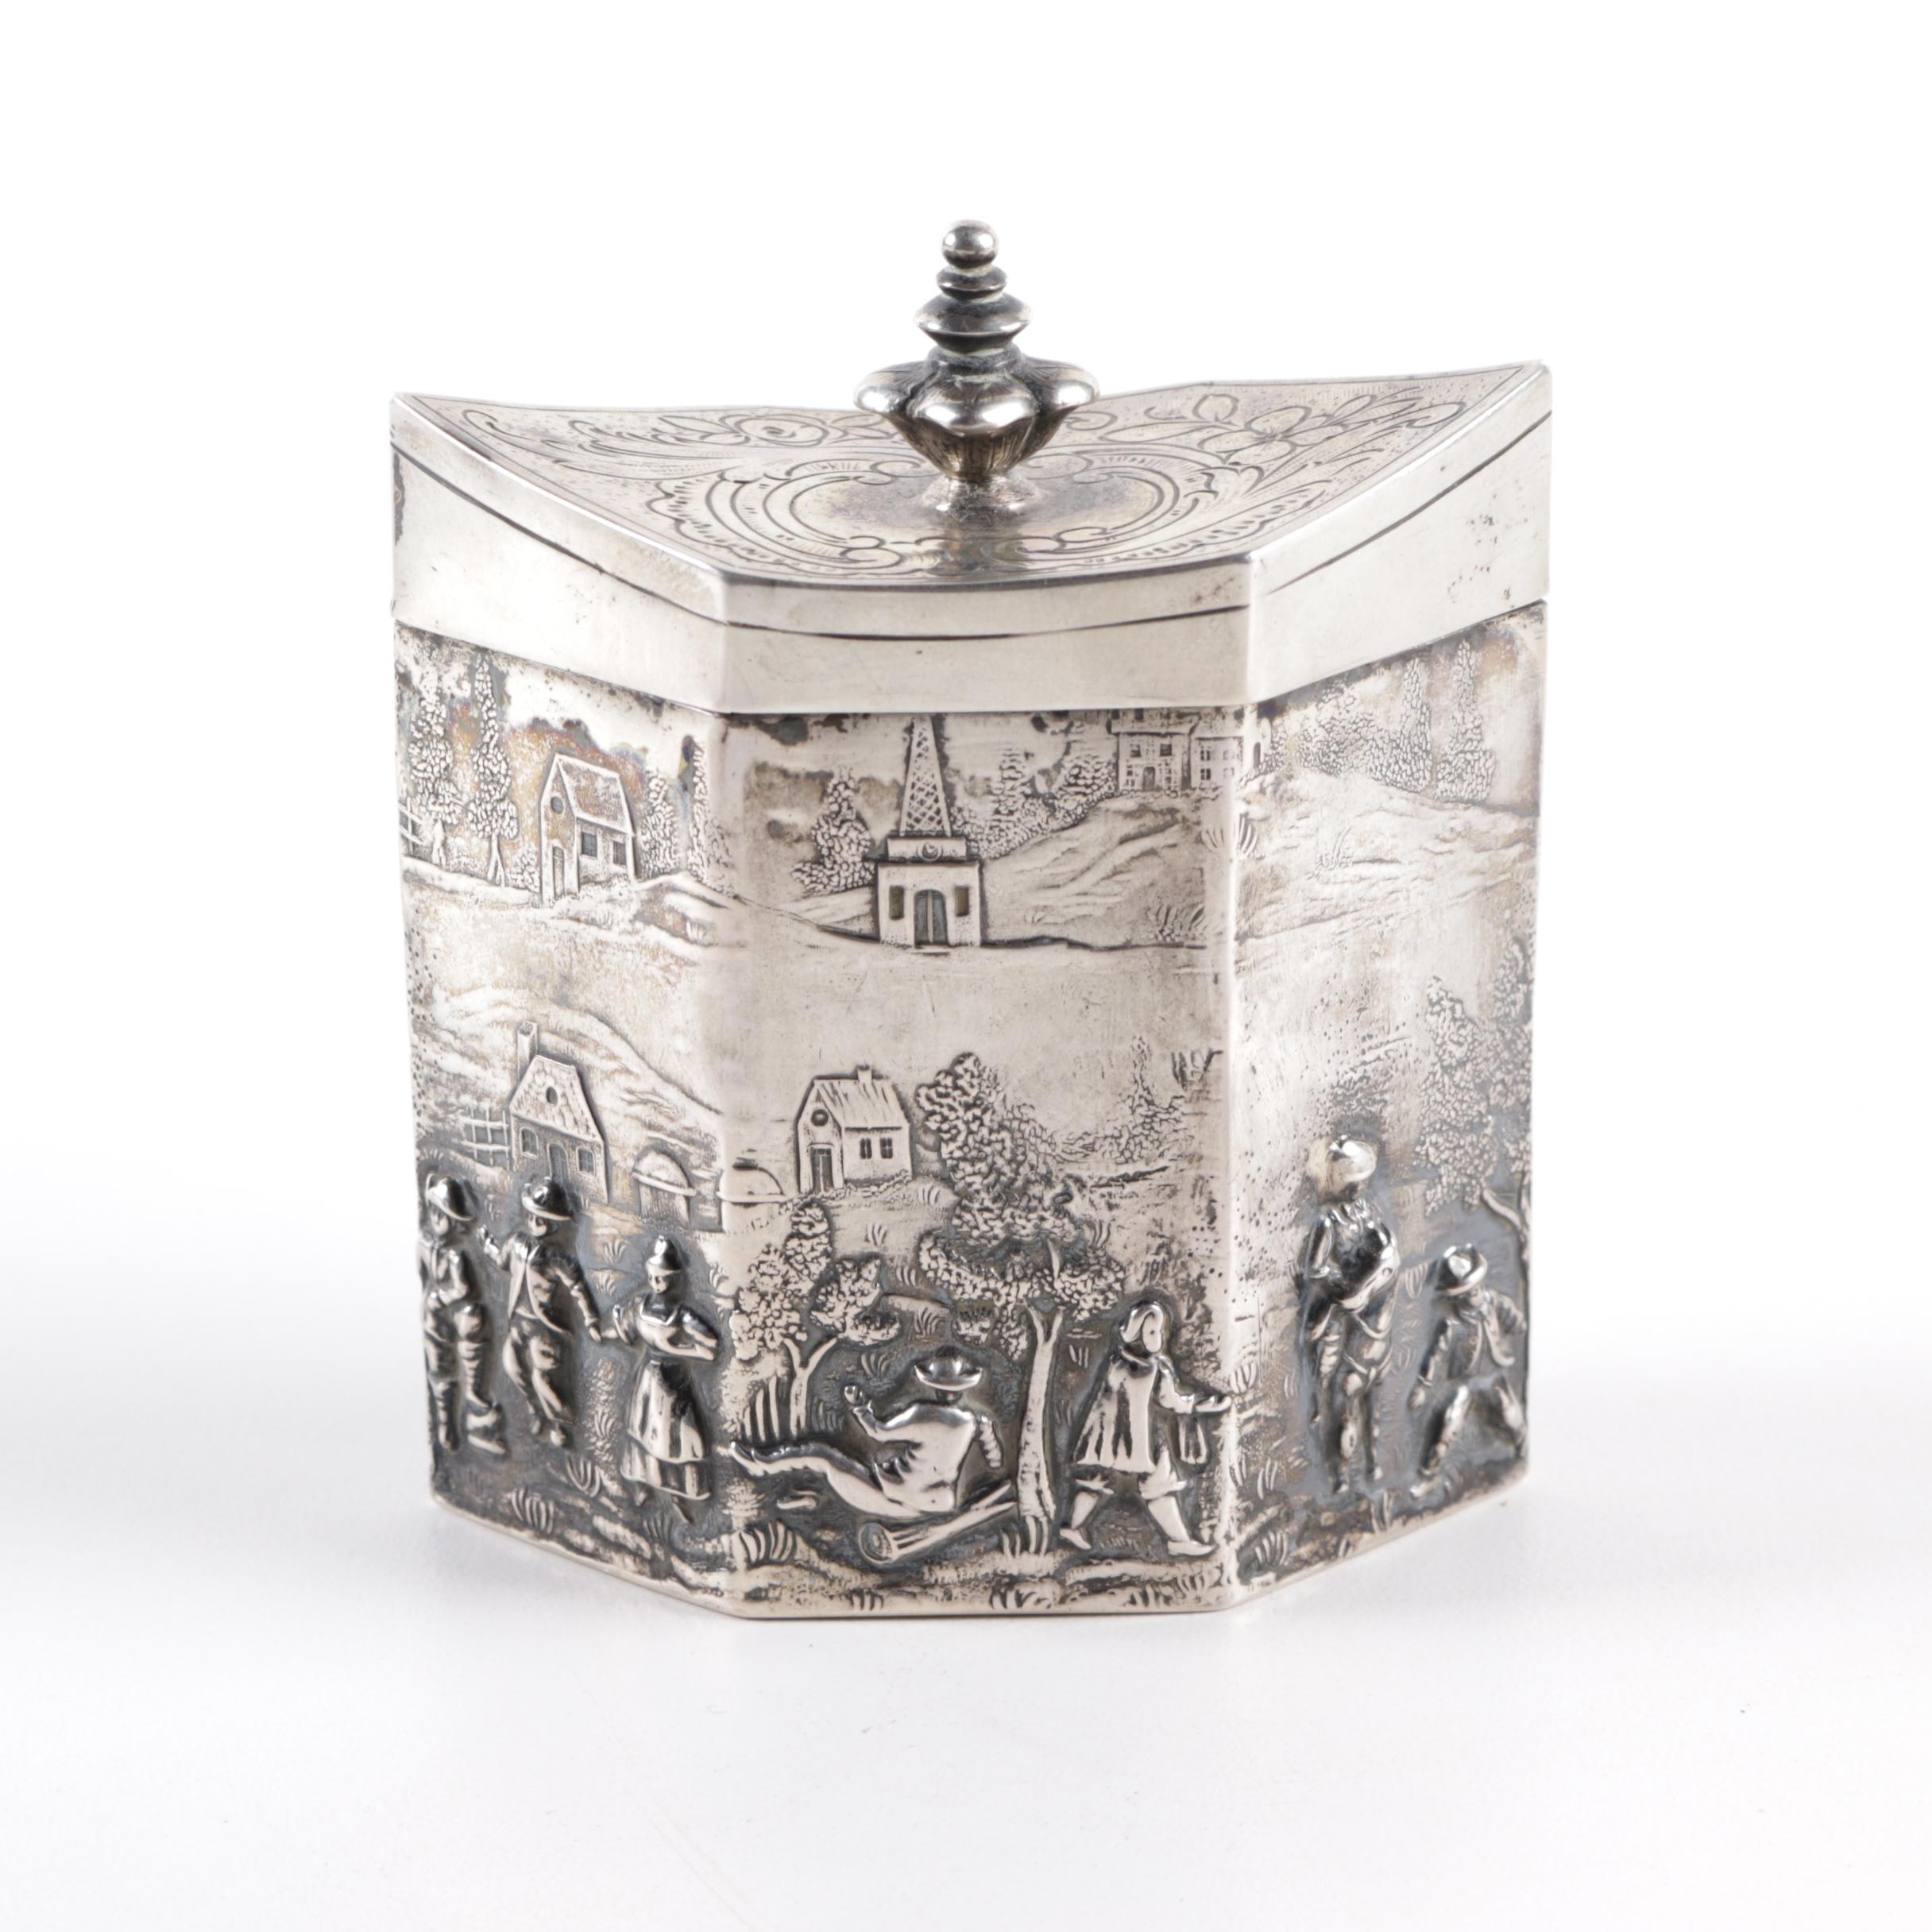 800 Silver Chased and Repoussé Tea Caddy Attributed to Wolf & Knell